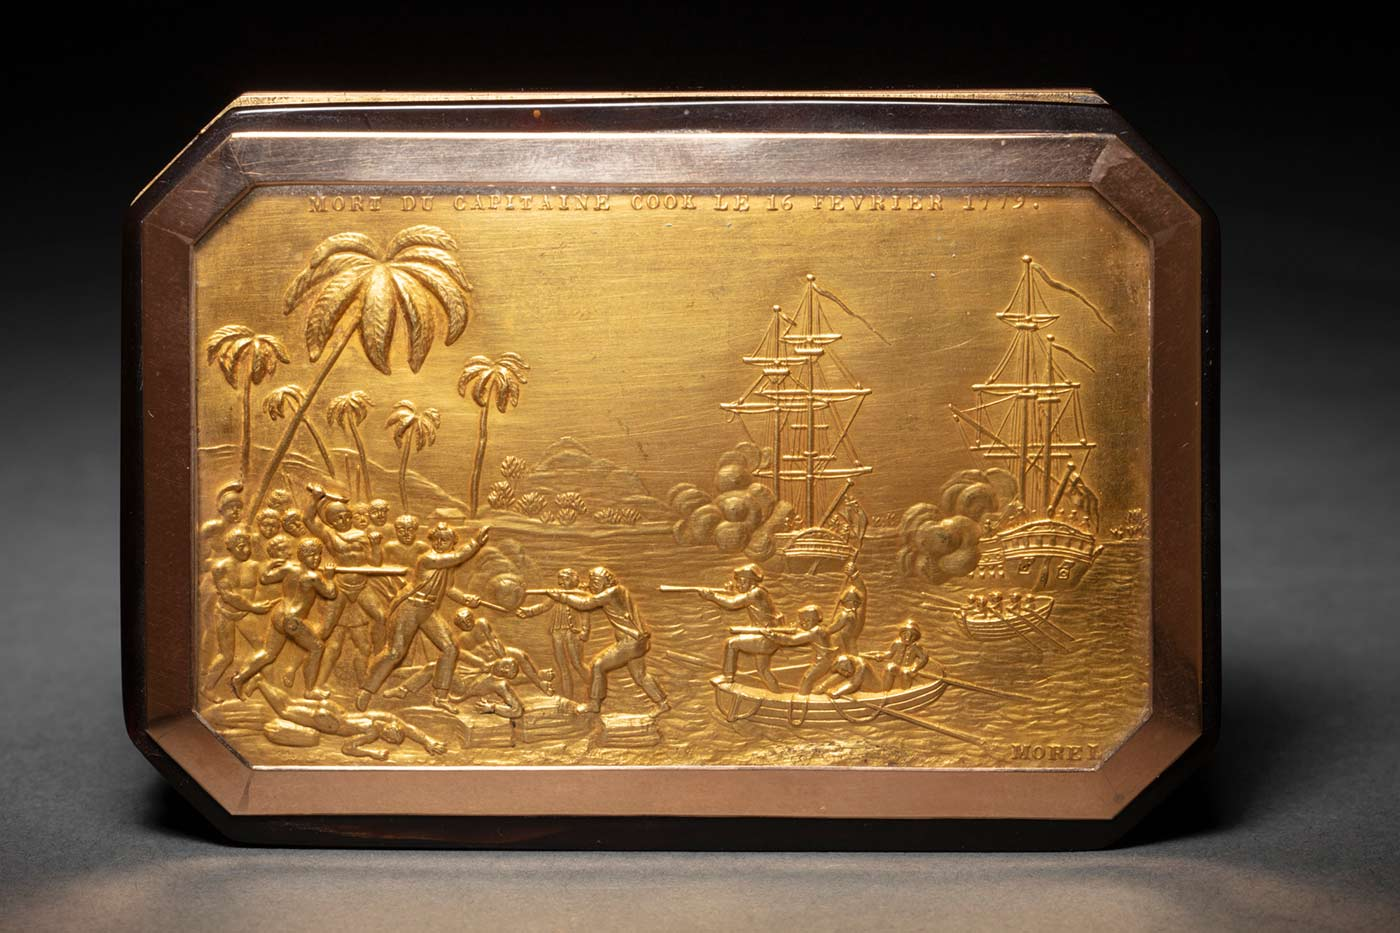 Tortoiseshell snuff box, incorporating a gold plaque on the lid that shows the death of Captain Cook at Kealukakua Bay in 1779, with boats on the harbour in the background. Relief text across the top of the gold plaque reads 'MORT DU CAPITAINE COOK LE 16 FEVRIER 1779'. The artist's signature 'Morel' appears at the bottom right corner.